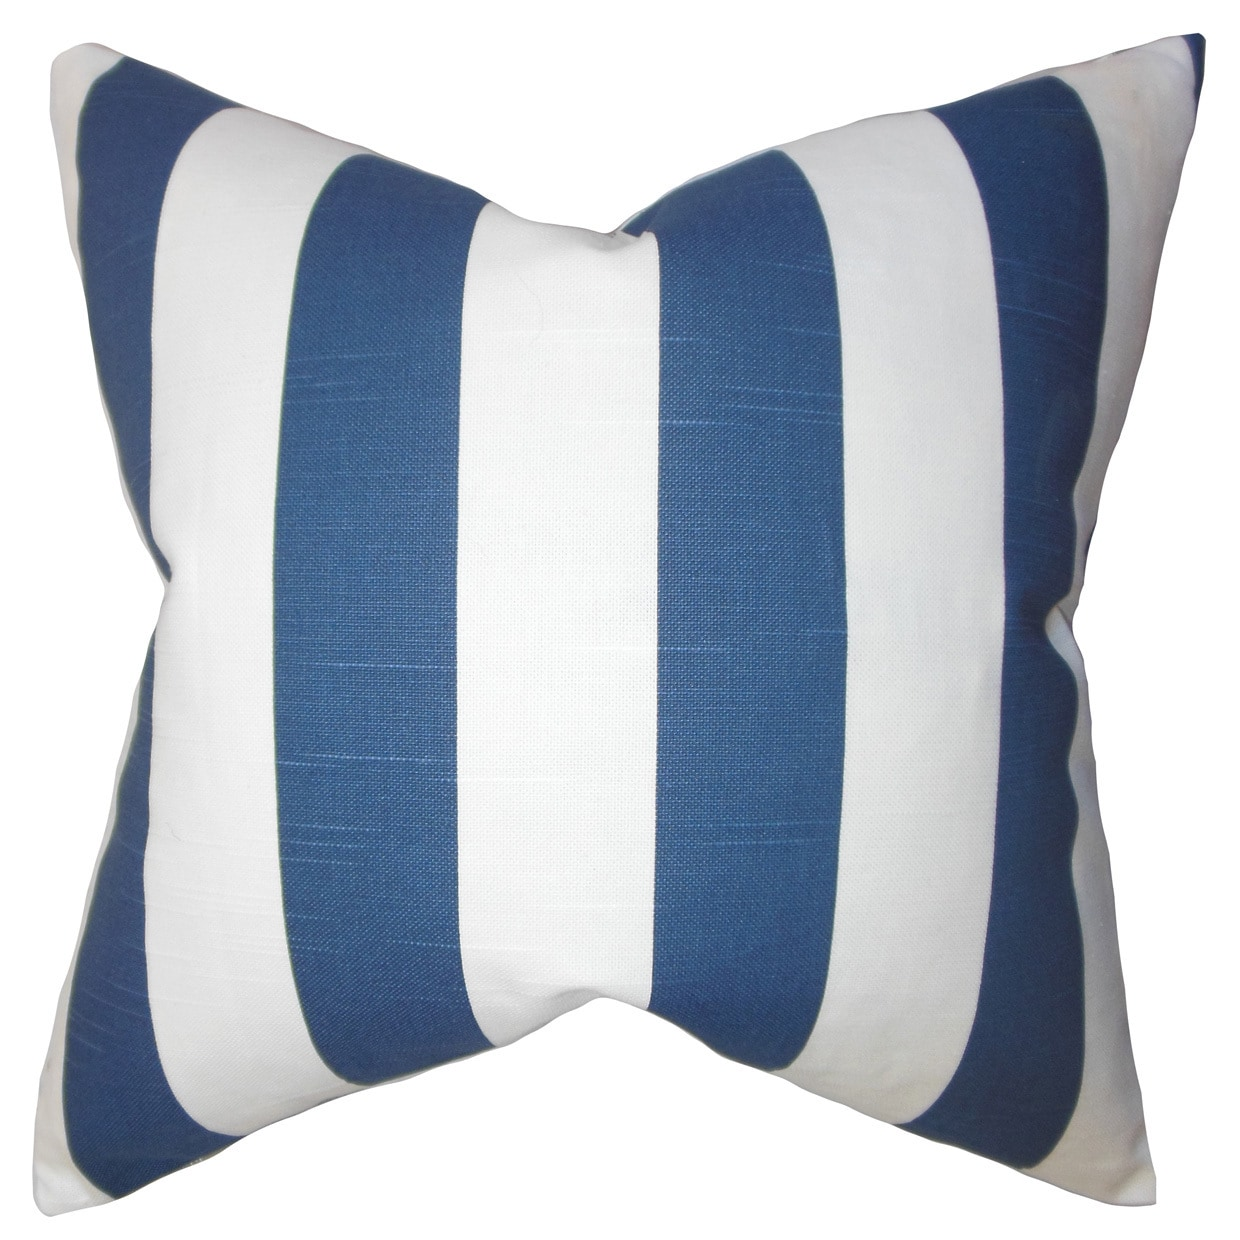 The Pillow Collection Ilaam Stripes Bedding Sham Blue King//20 x 36